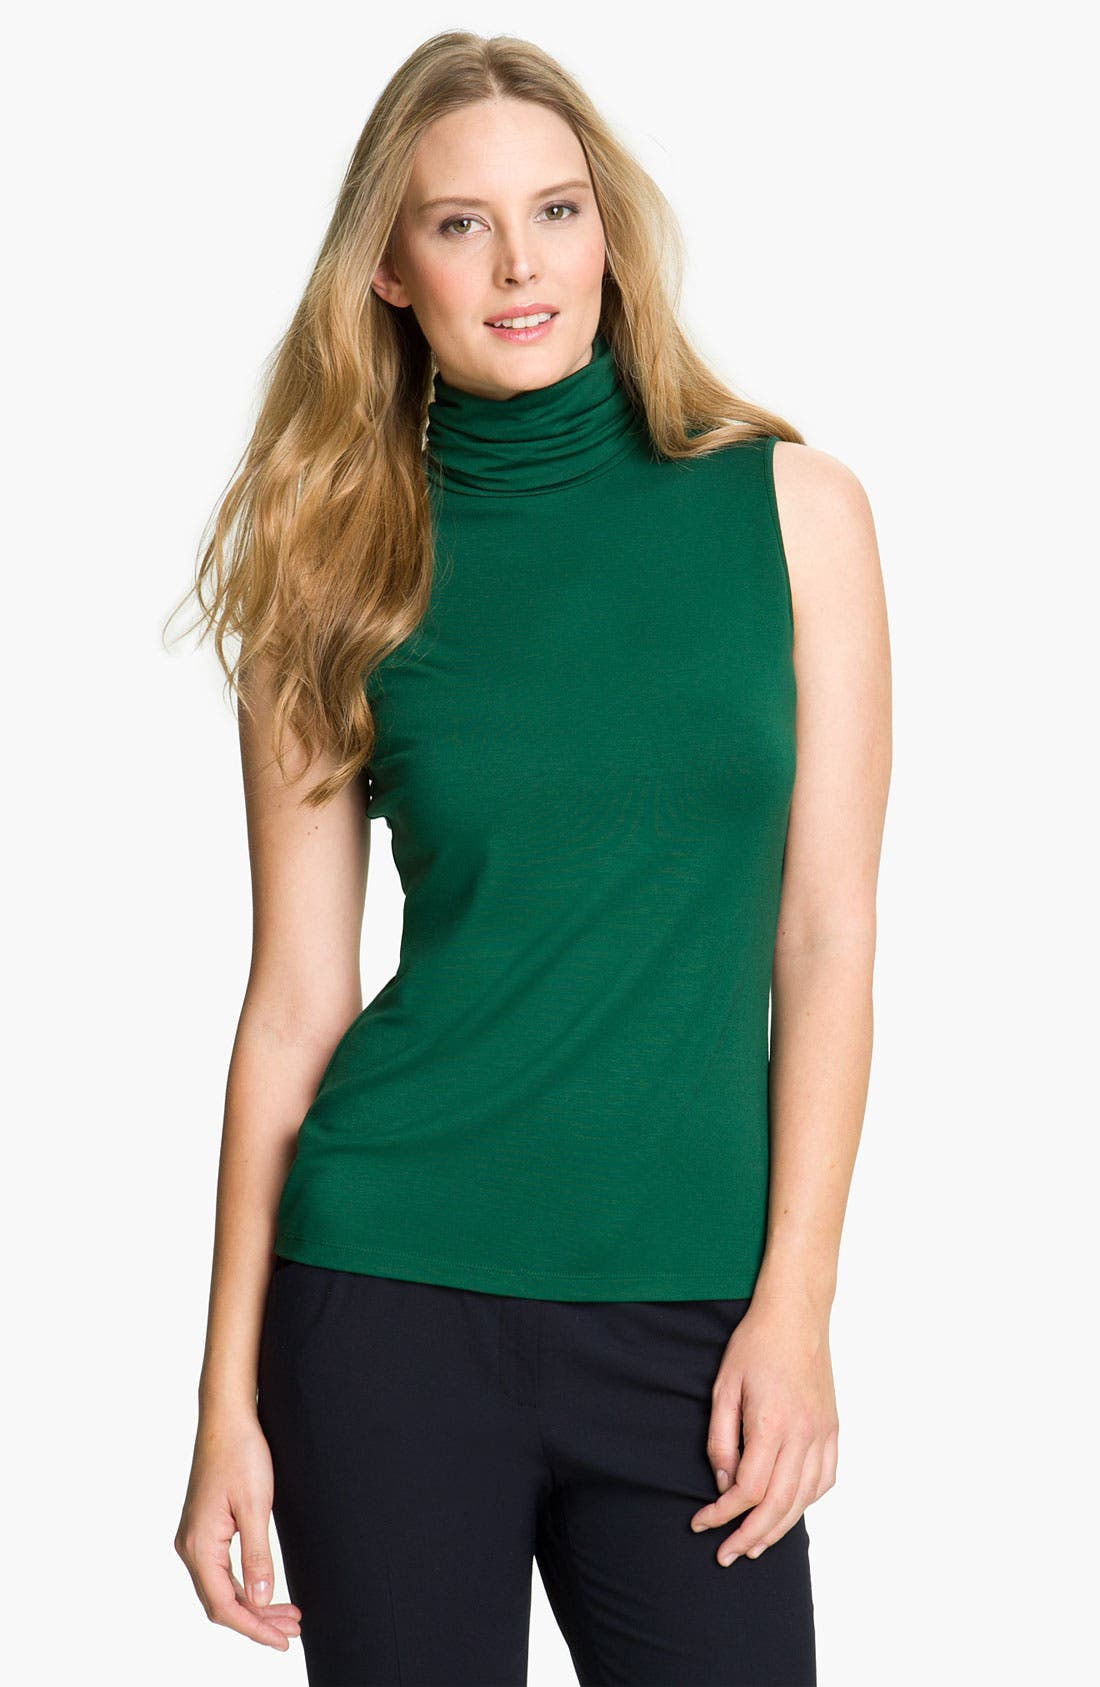 Alternate Image 1 Selected - Lafayette 148 New York 'Noveau Jersey' Sleeveless Turtleneck